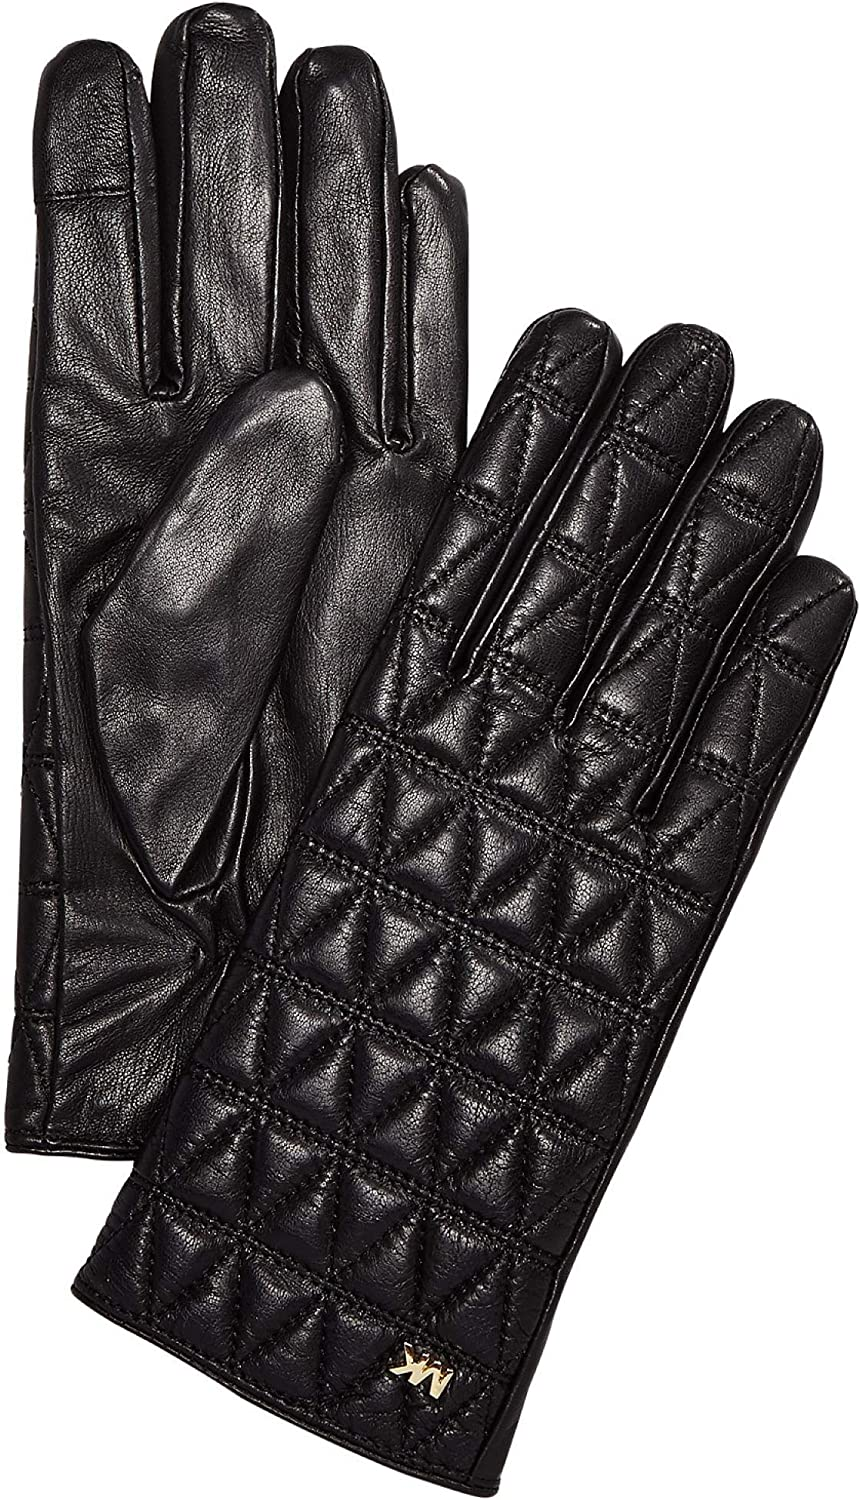 MICHAEL Michael Kors Women's Quilted Leather Gloves Black/Gold